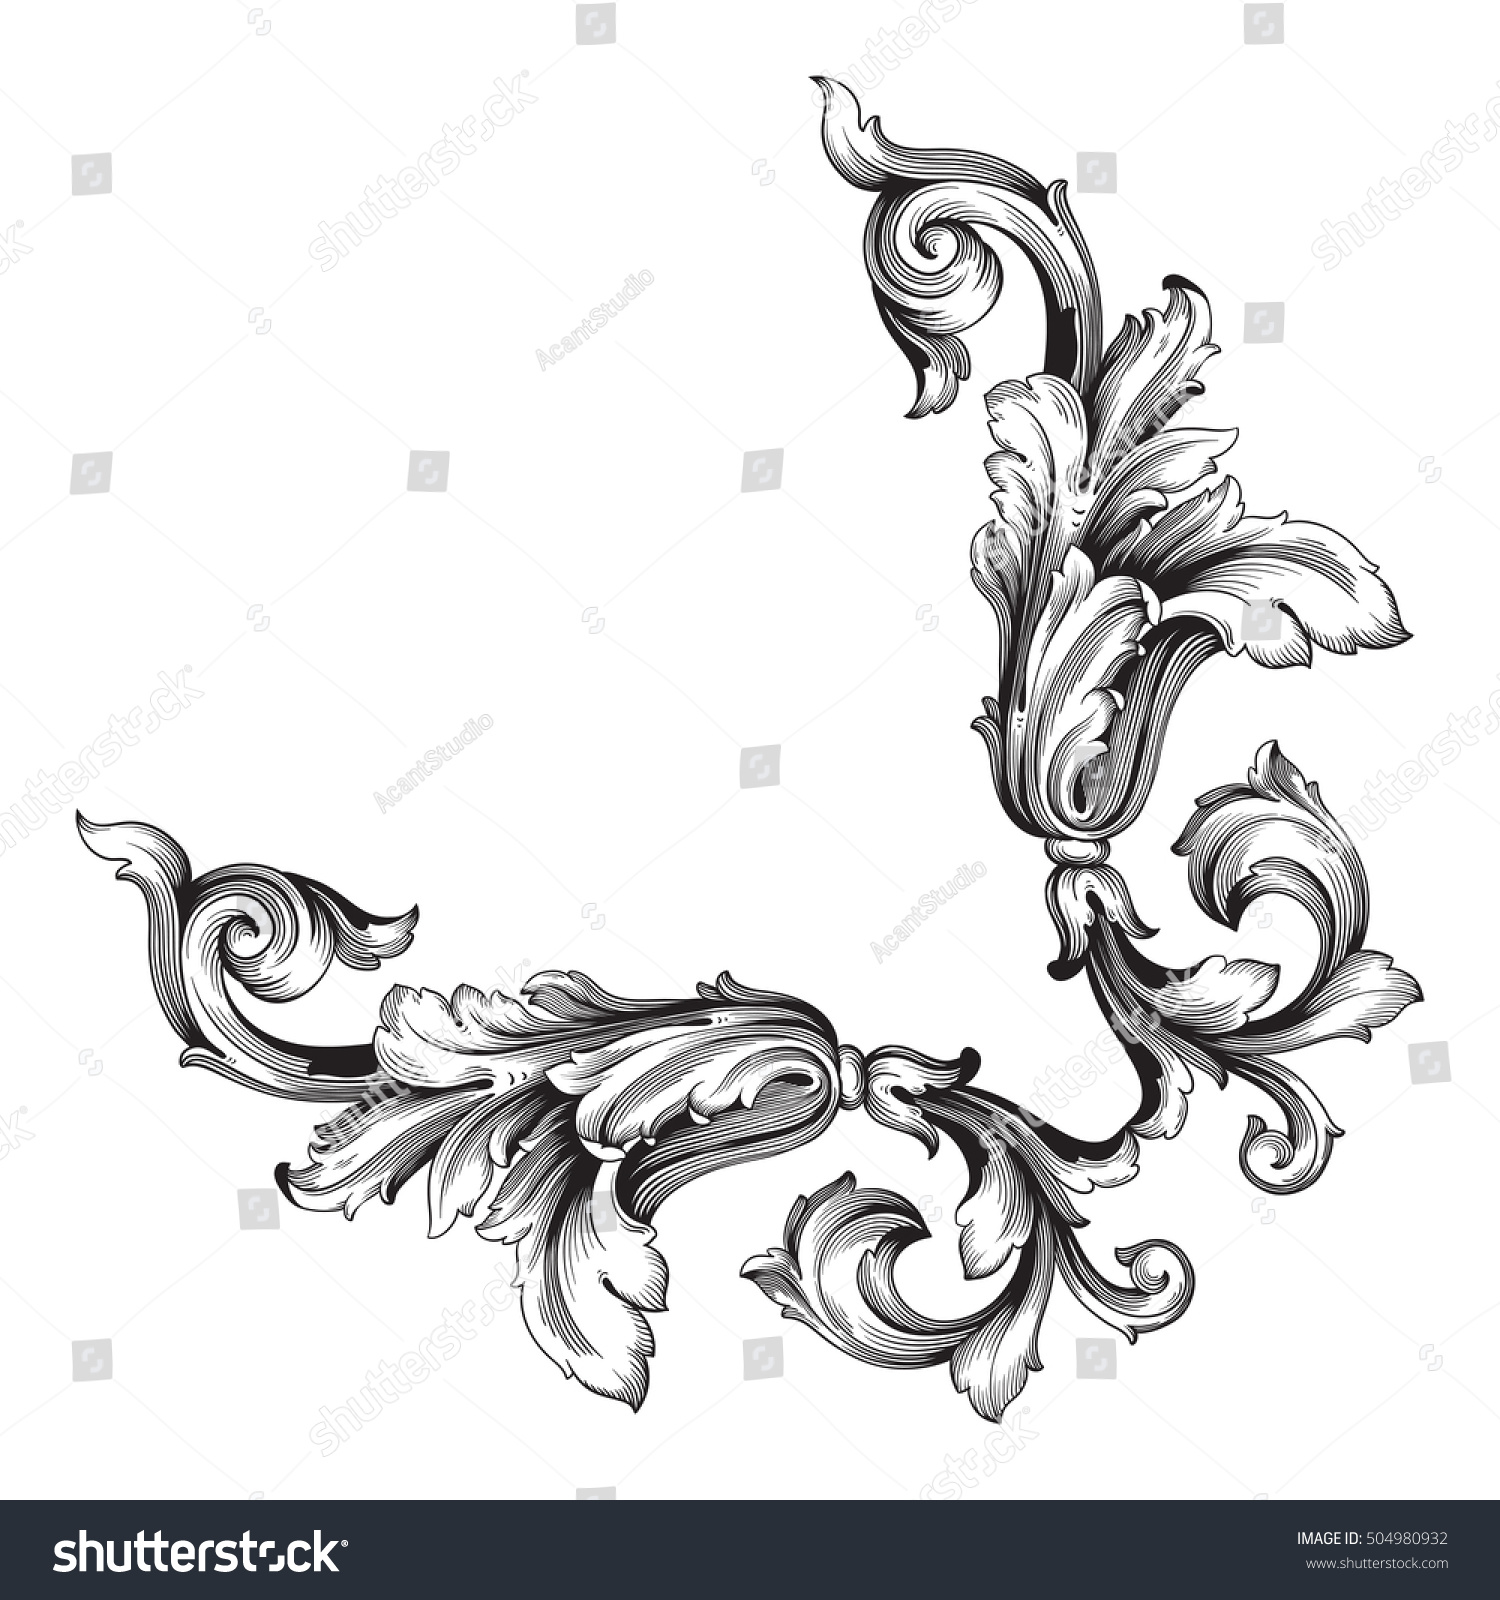 Antique Scroll Design: Royalty-free Vintage Baroque Corner Scroll Ornament